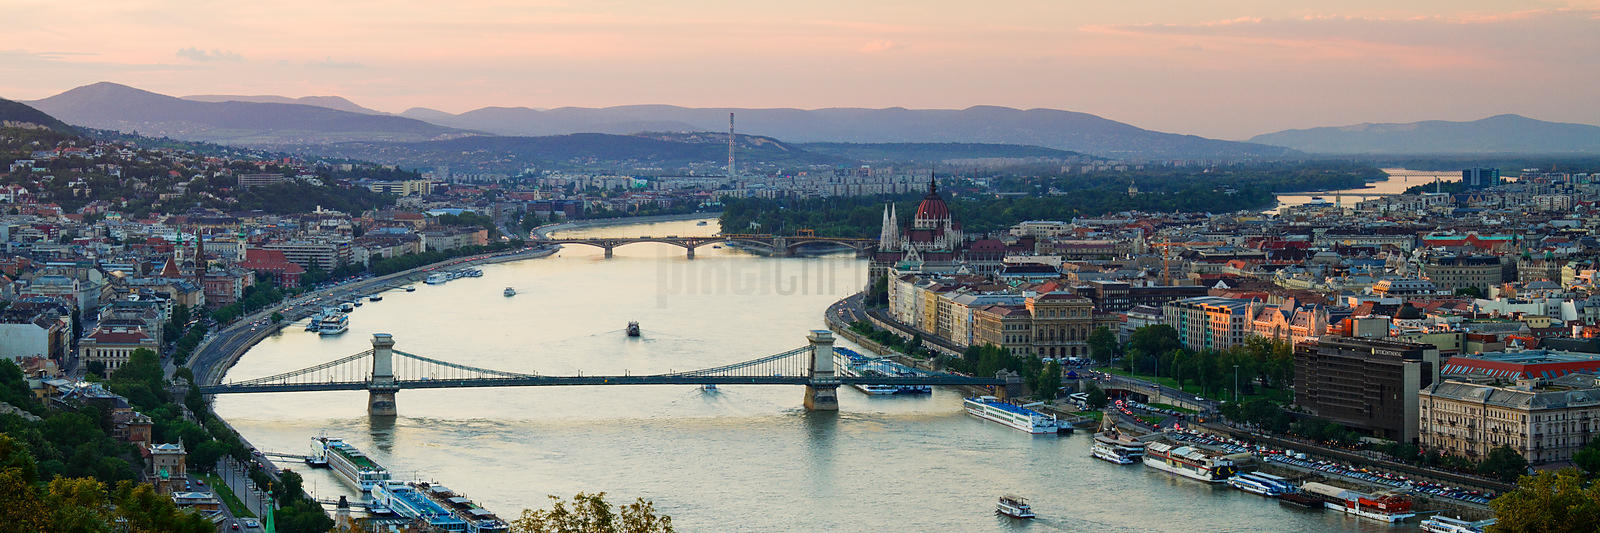 Budapest Skyline and the Danube River at Dusk